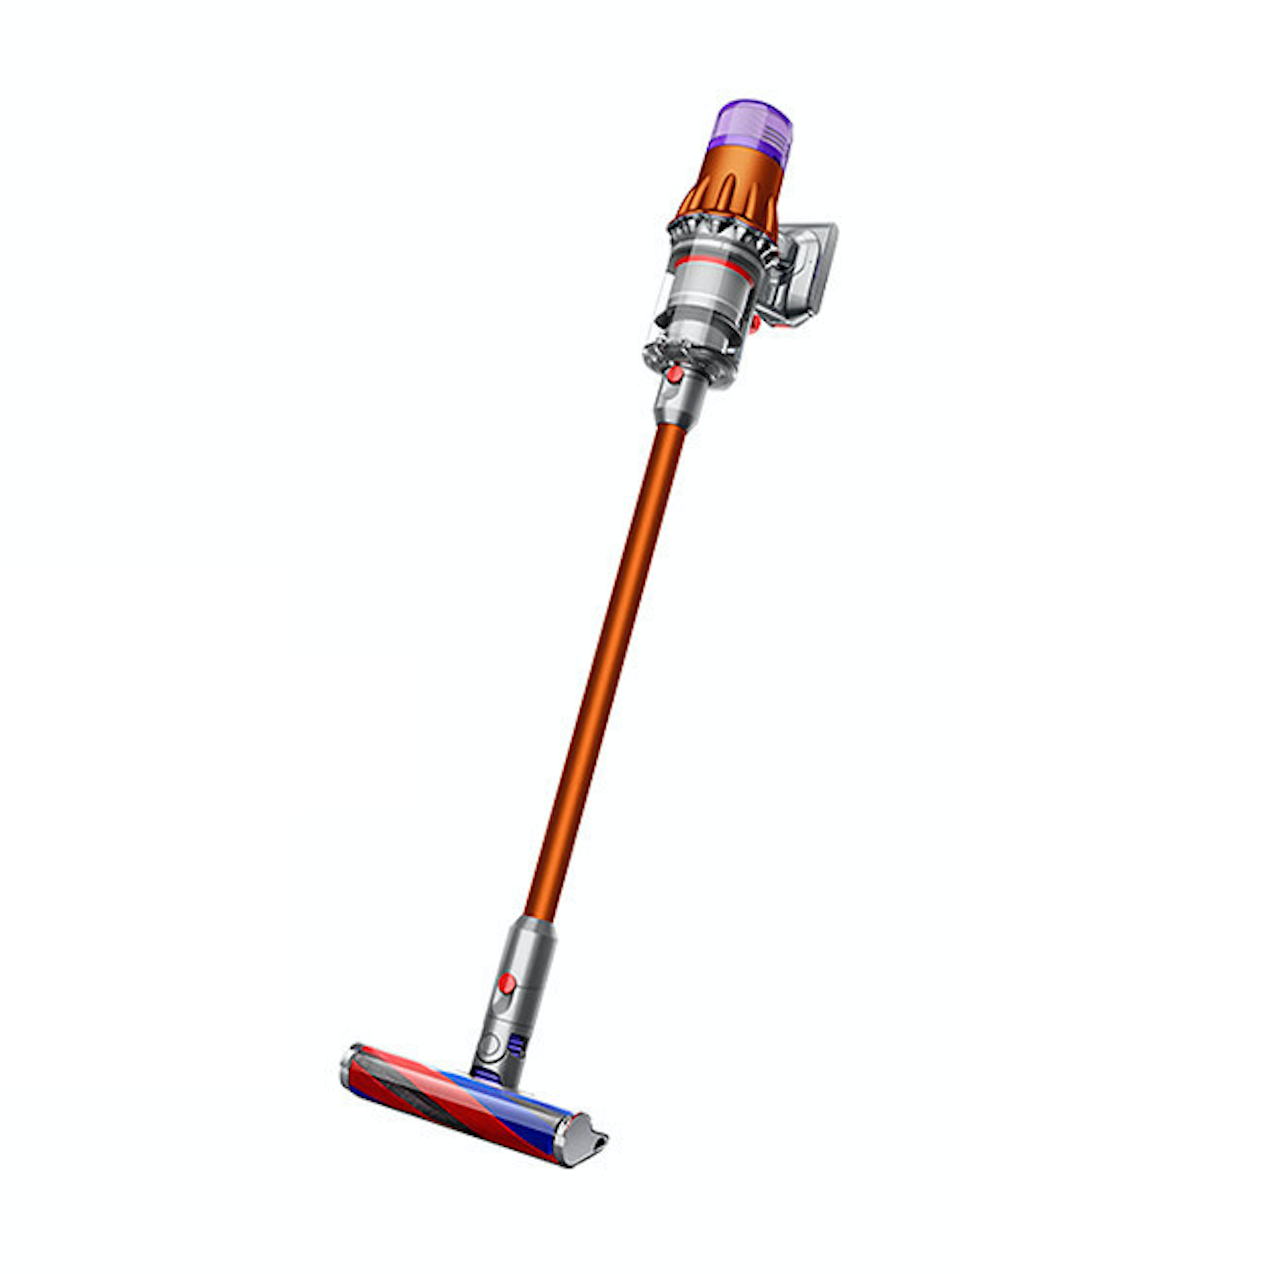 dyson 戴森 Digital Slim系列 手持式吸尘器